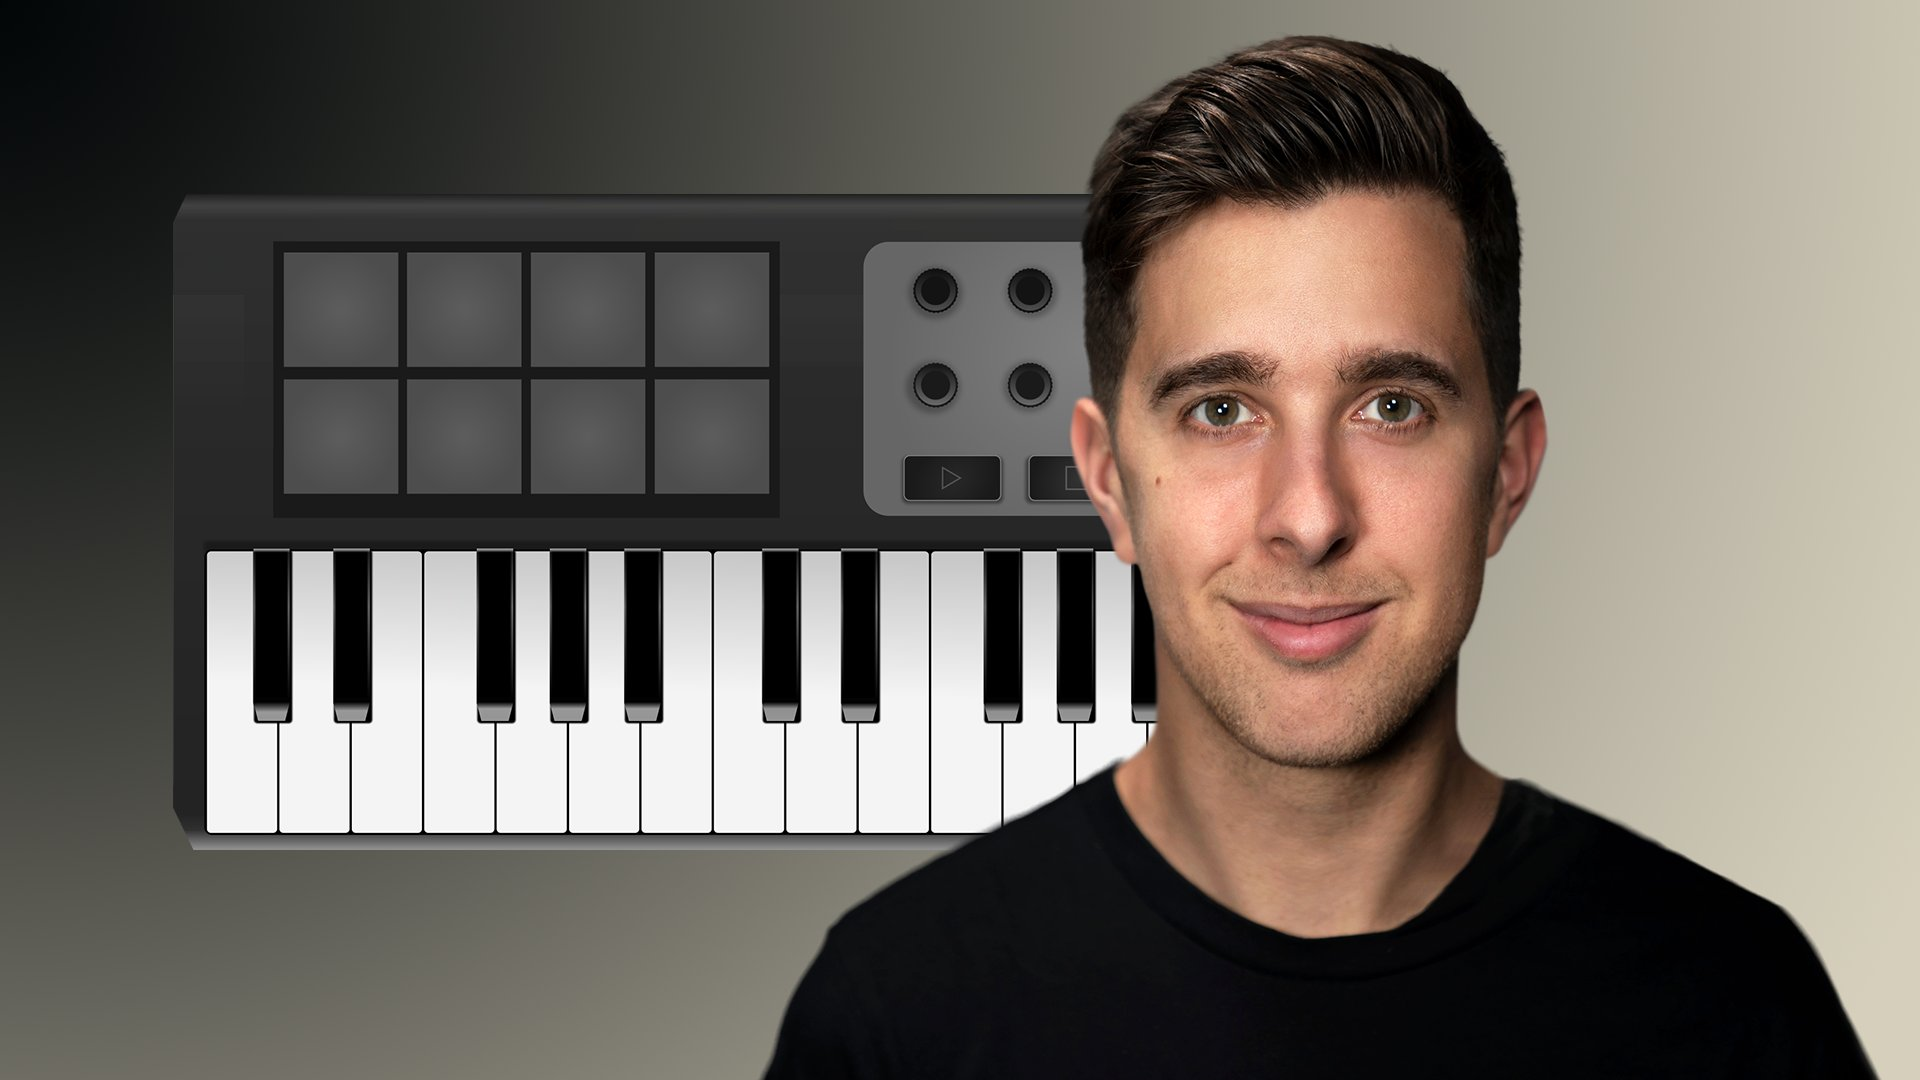 Music Theory for Electronic Music Producers - The Complete Course!